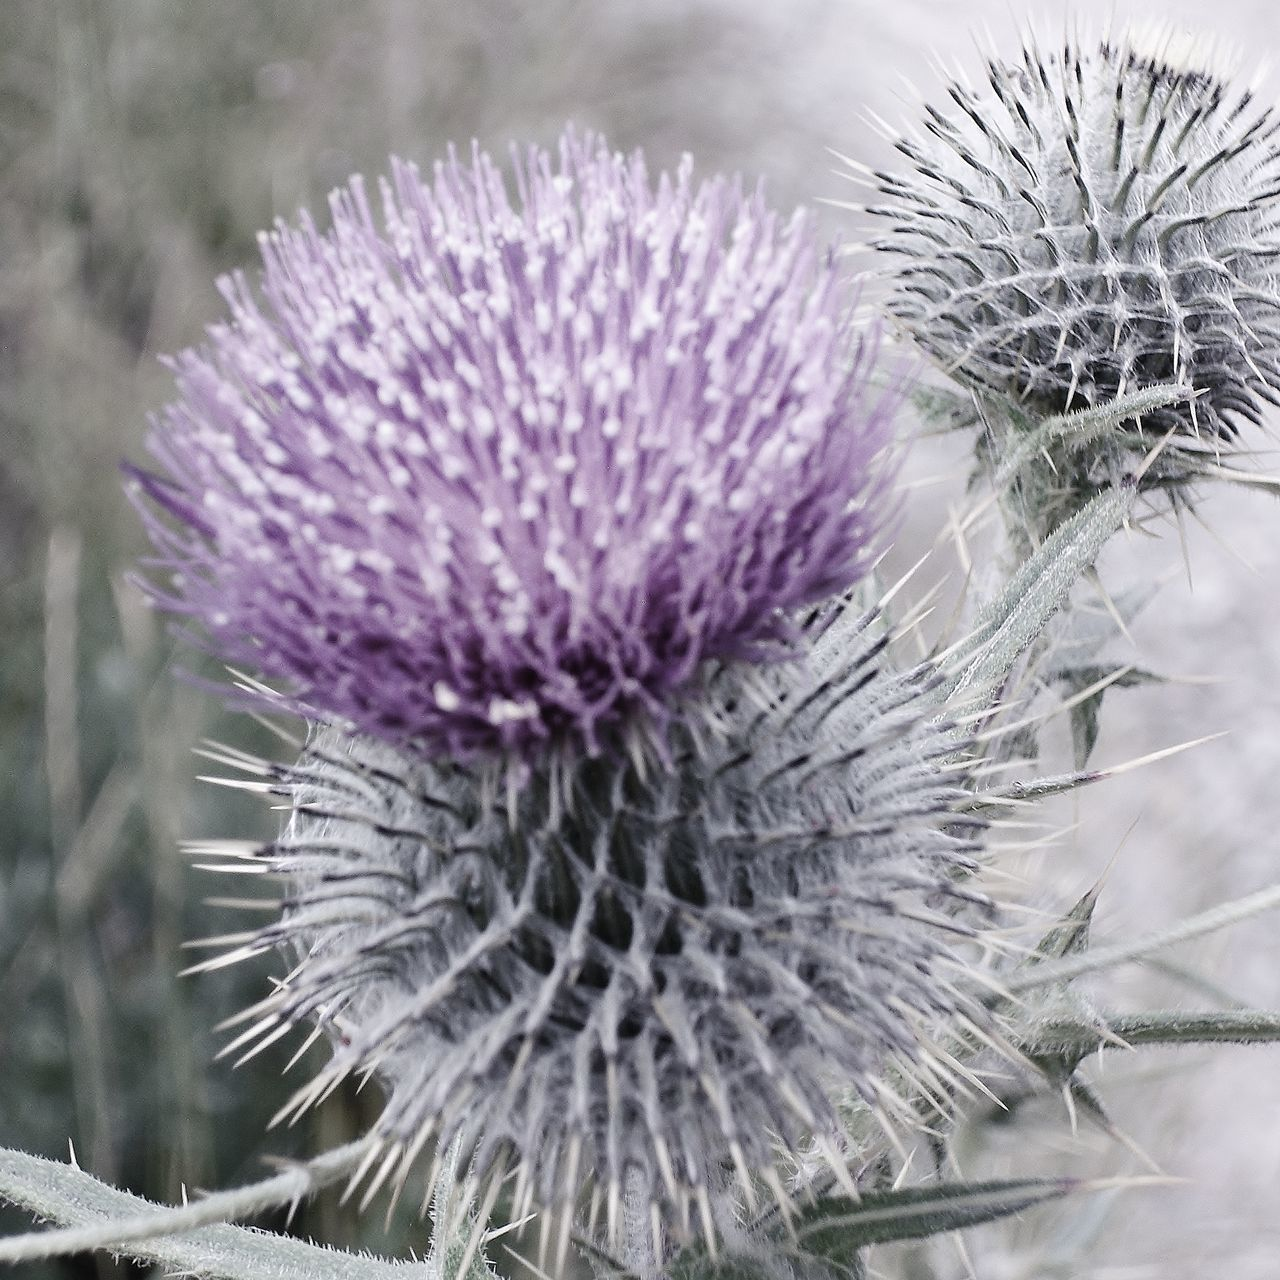 Thistle head Beauty In Nature Close-up Day Emblem Of Scotland Flower Head Focus On Foreground Muted Color Plant Purple Scottish Single Flower Spiked Thistle Thorn Uncultivated